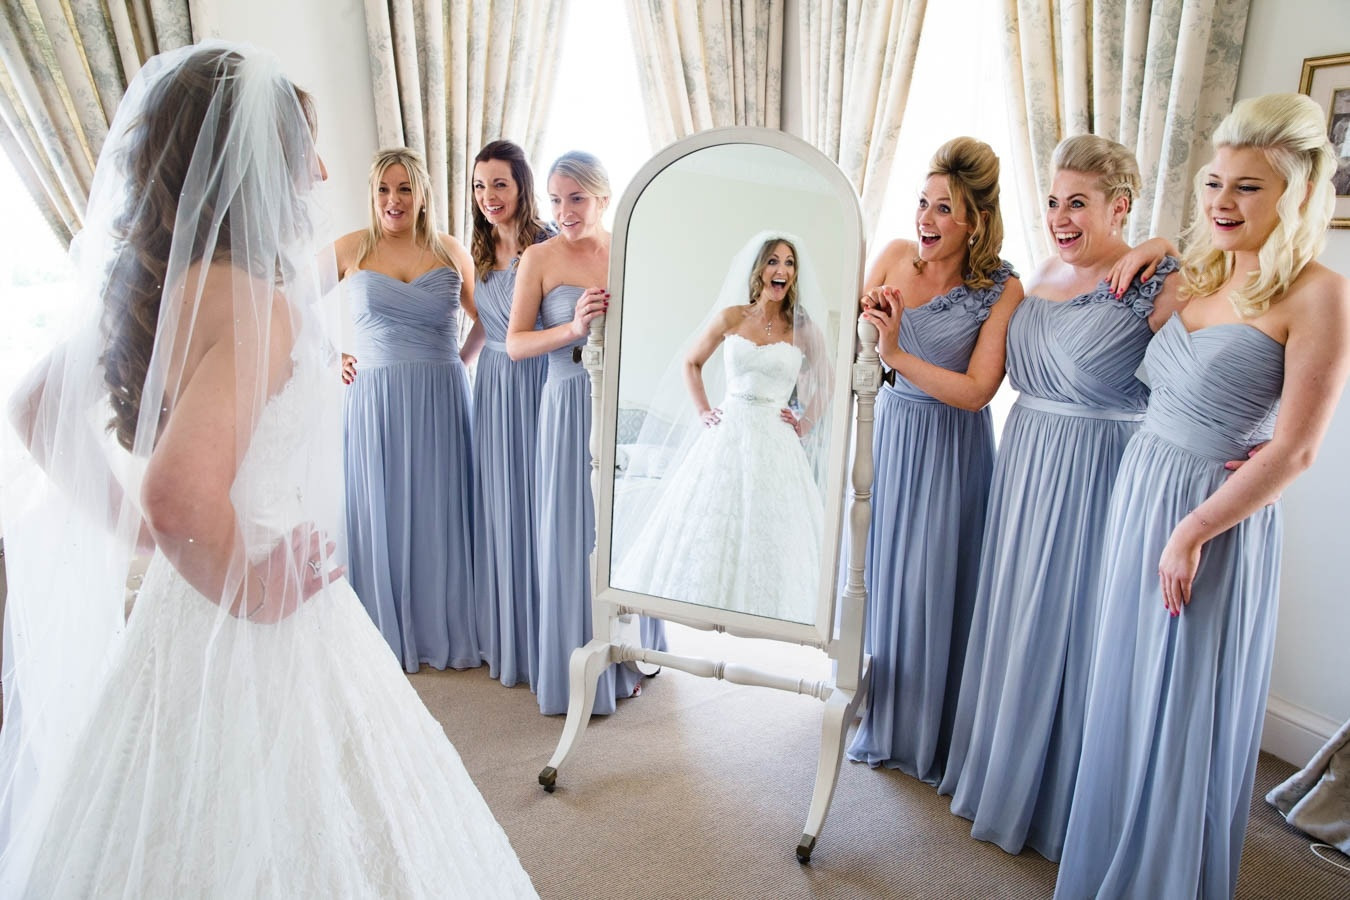 Bridebook.co.uk- bride reflected in mirror as bridesmaids see her for the first time